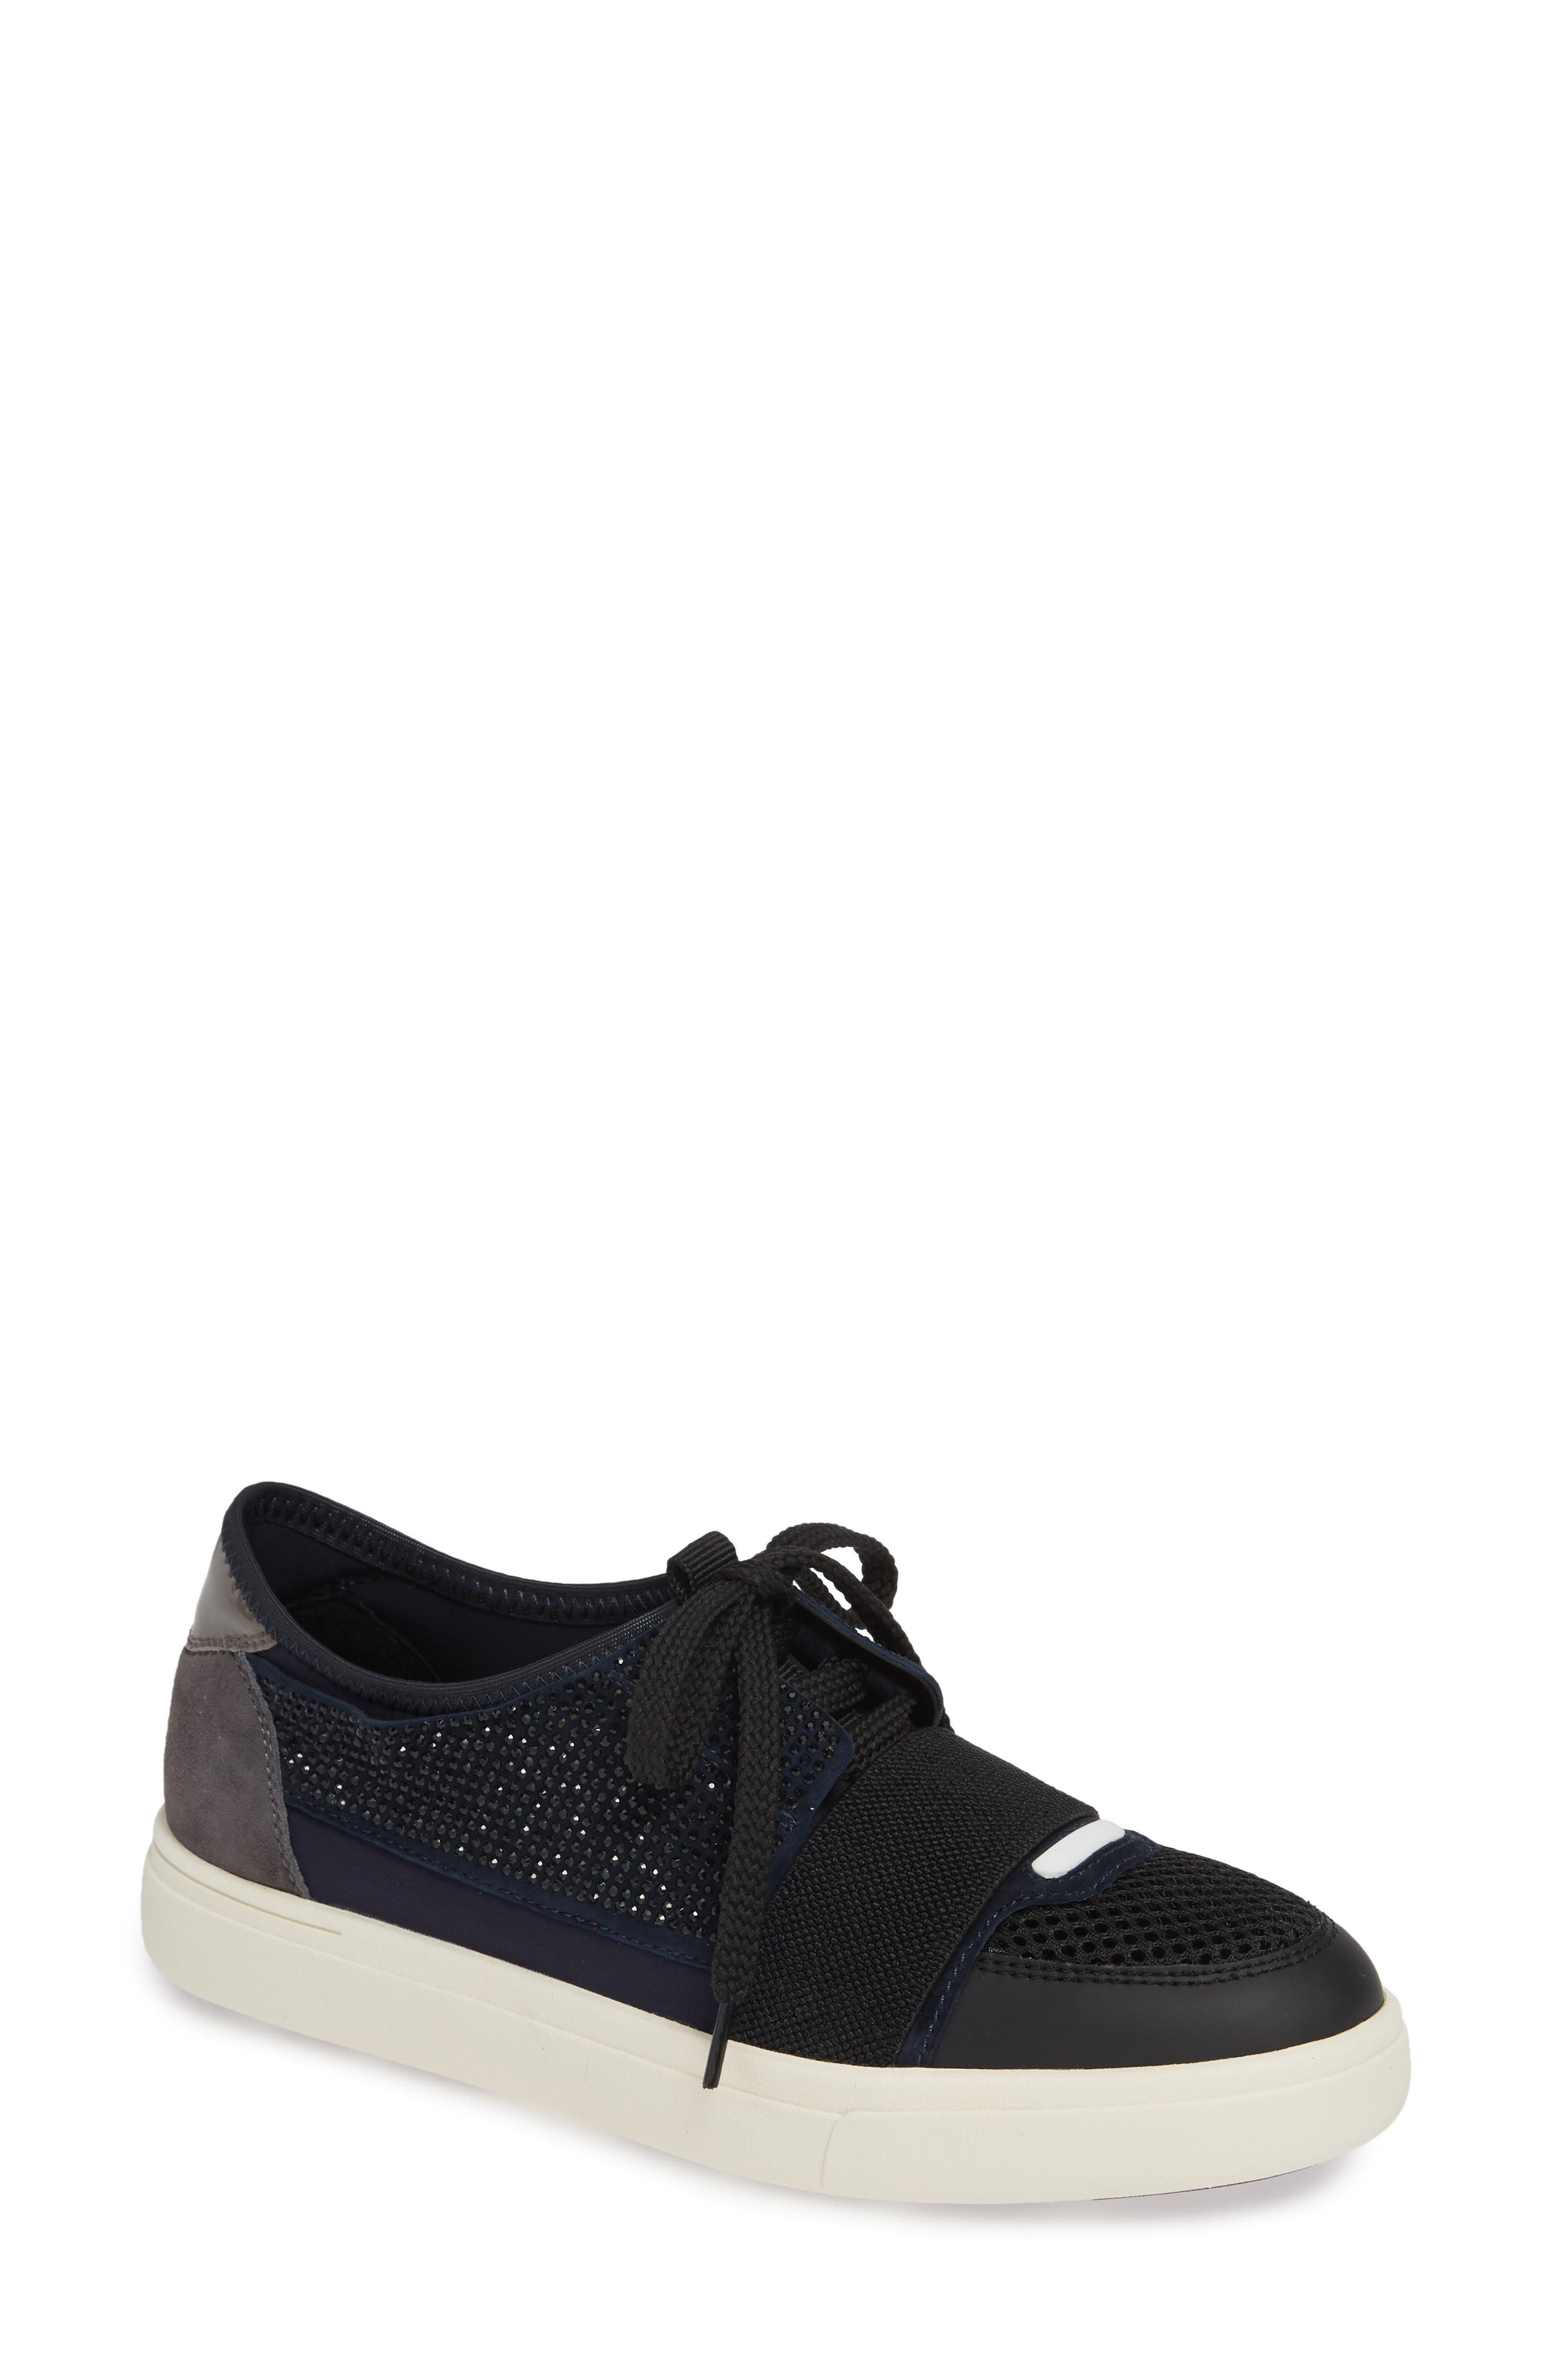 Onella Lace-Up Sneaker,                             Main thumbnail 1, color,                             BLACK/ NAVY/ GREY MULTI